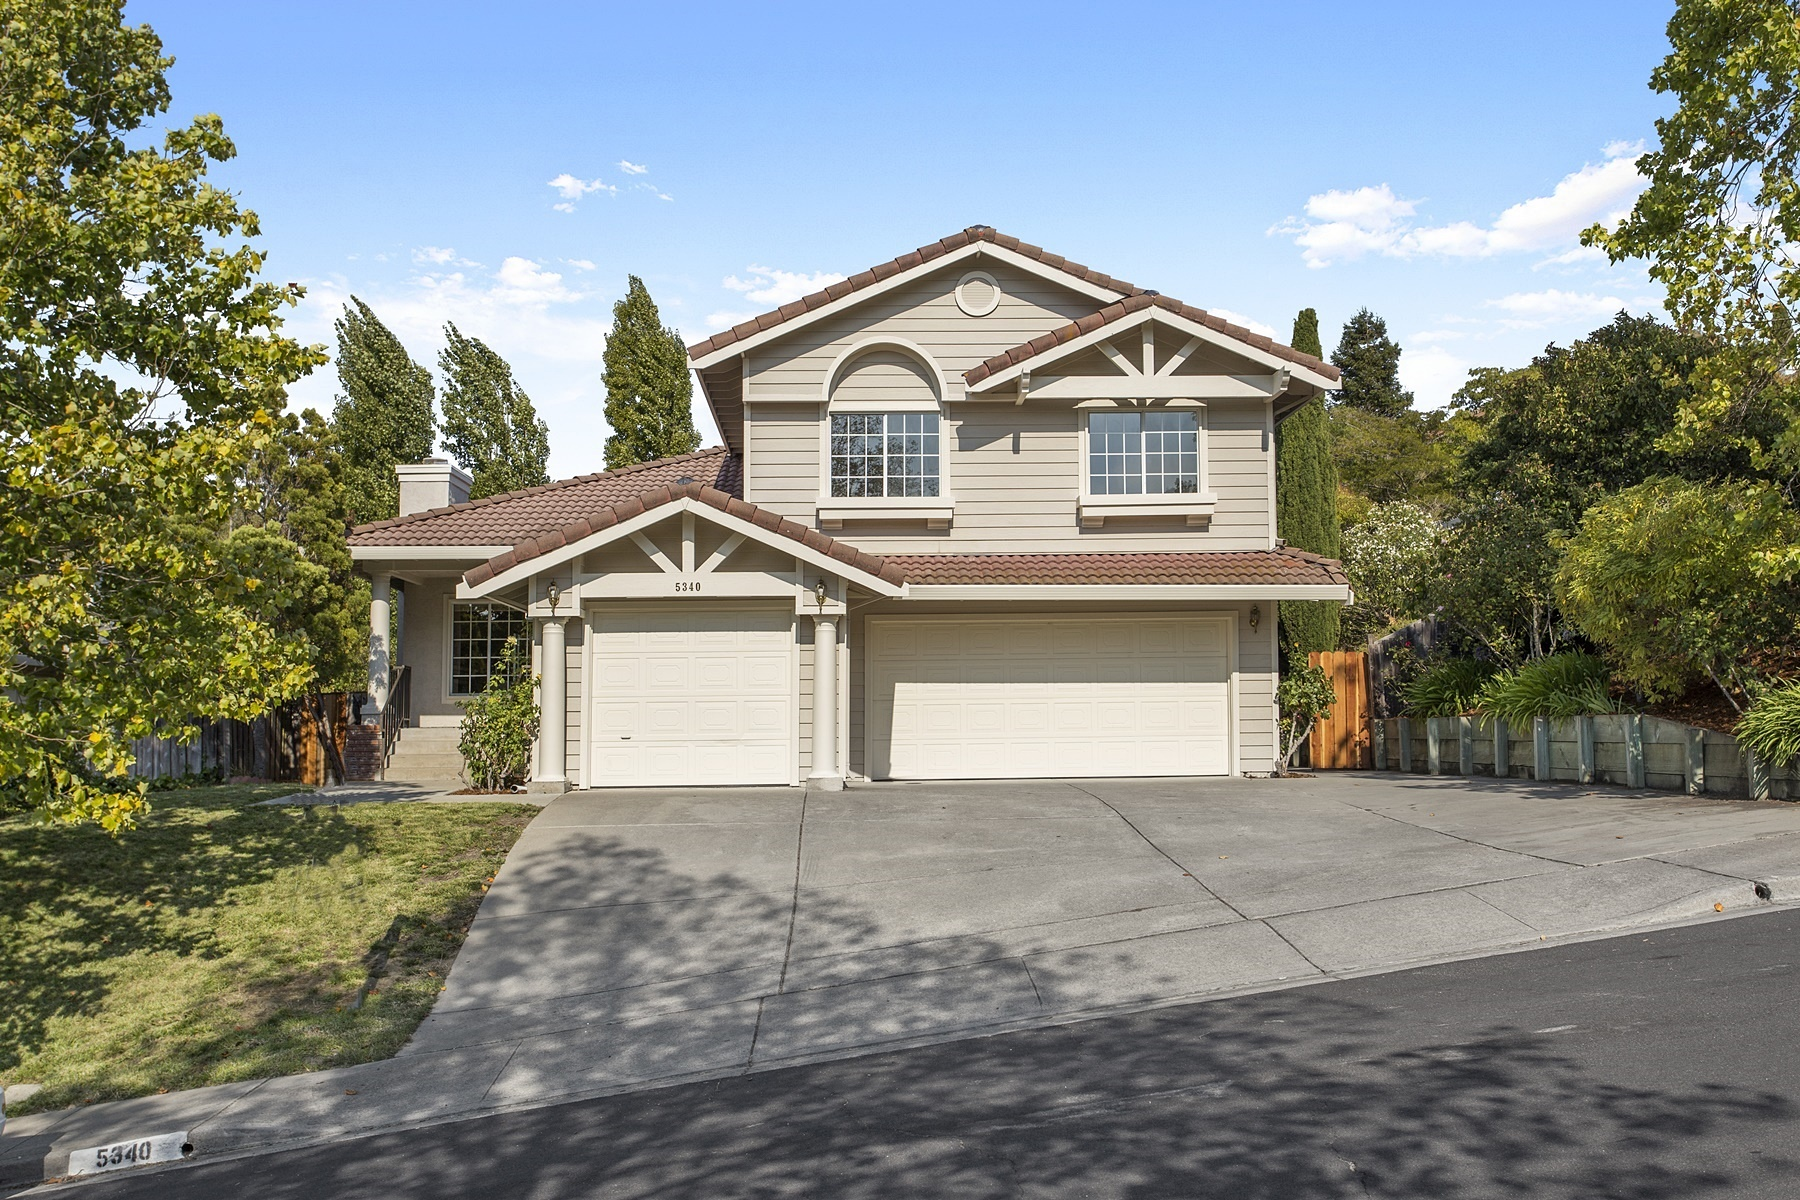 sales property at Carriage Hills South Creme Dela Creme